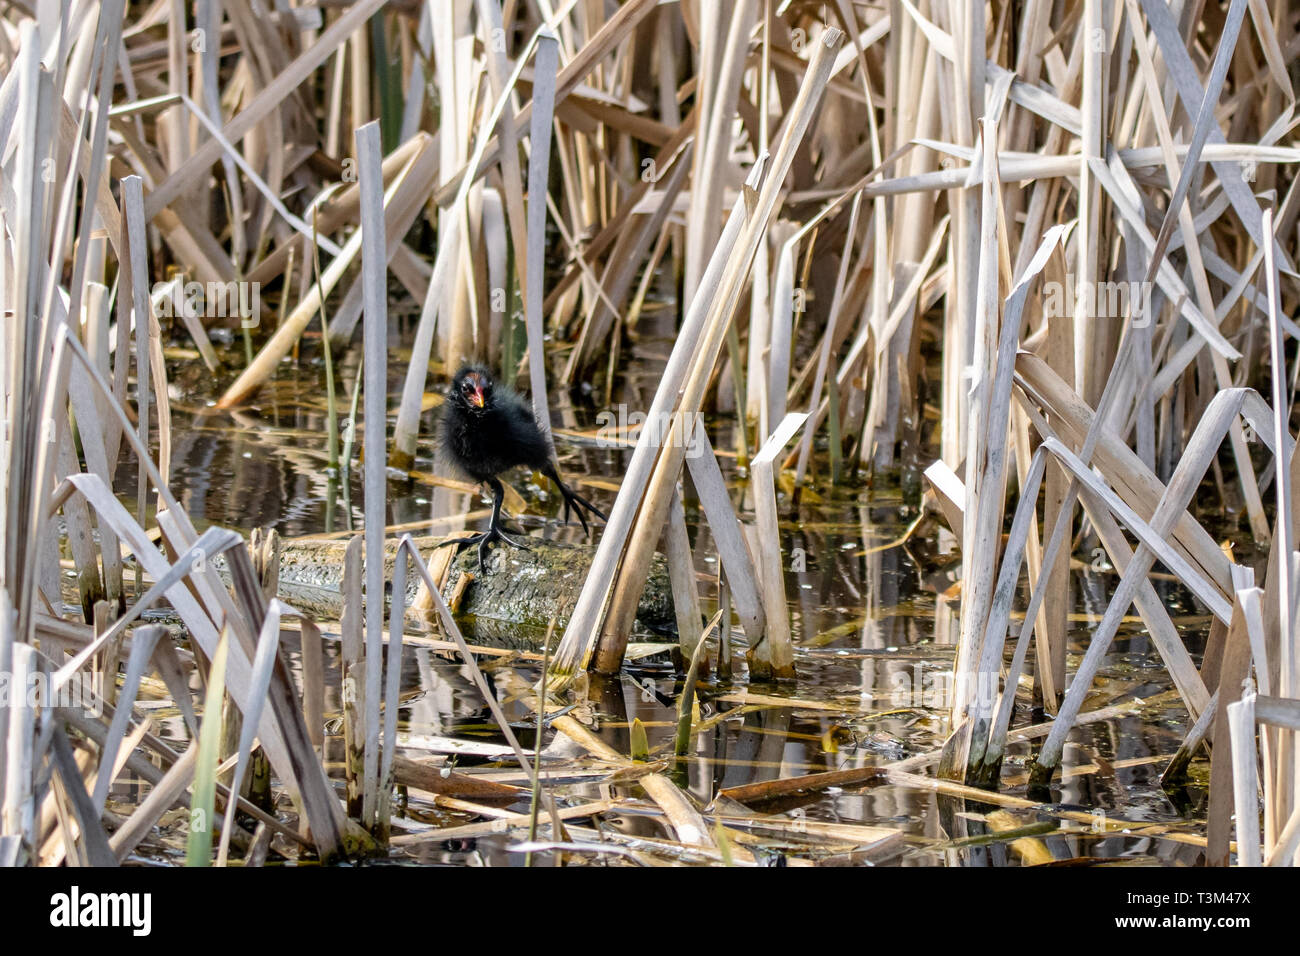 Young moorhen duckling stretching a leg and standing amongst marsh reeds on a floating wooden log Stock Photo